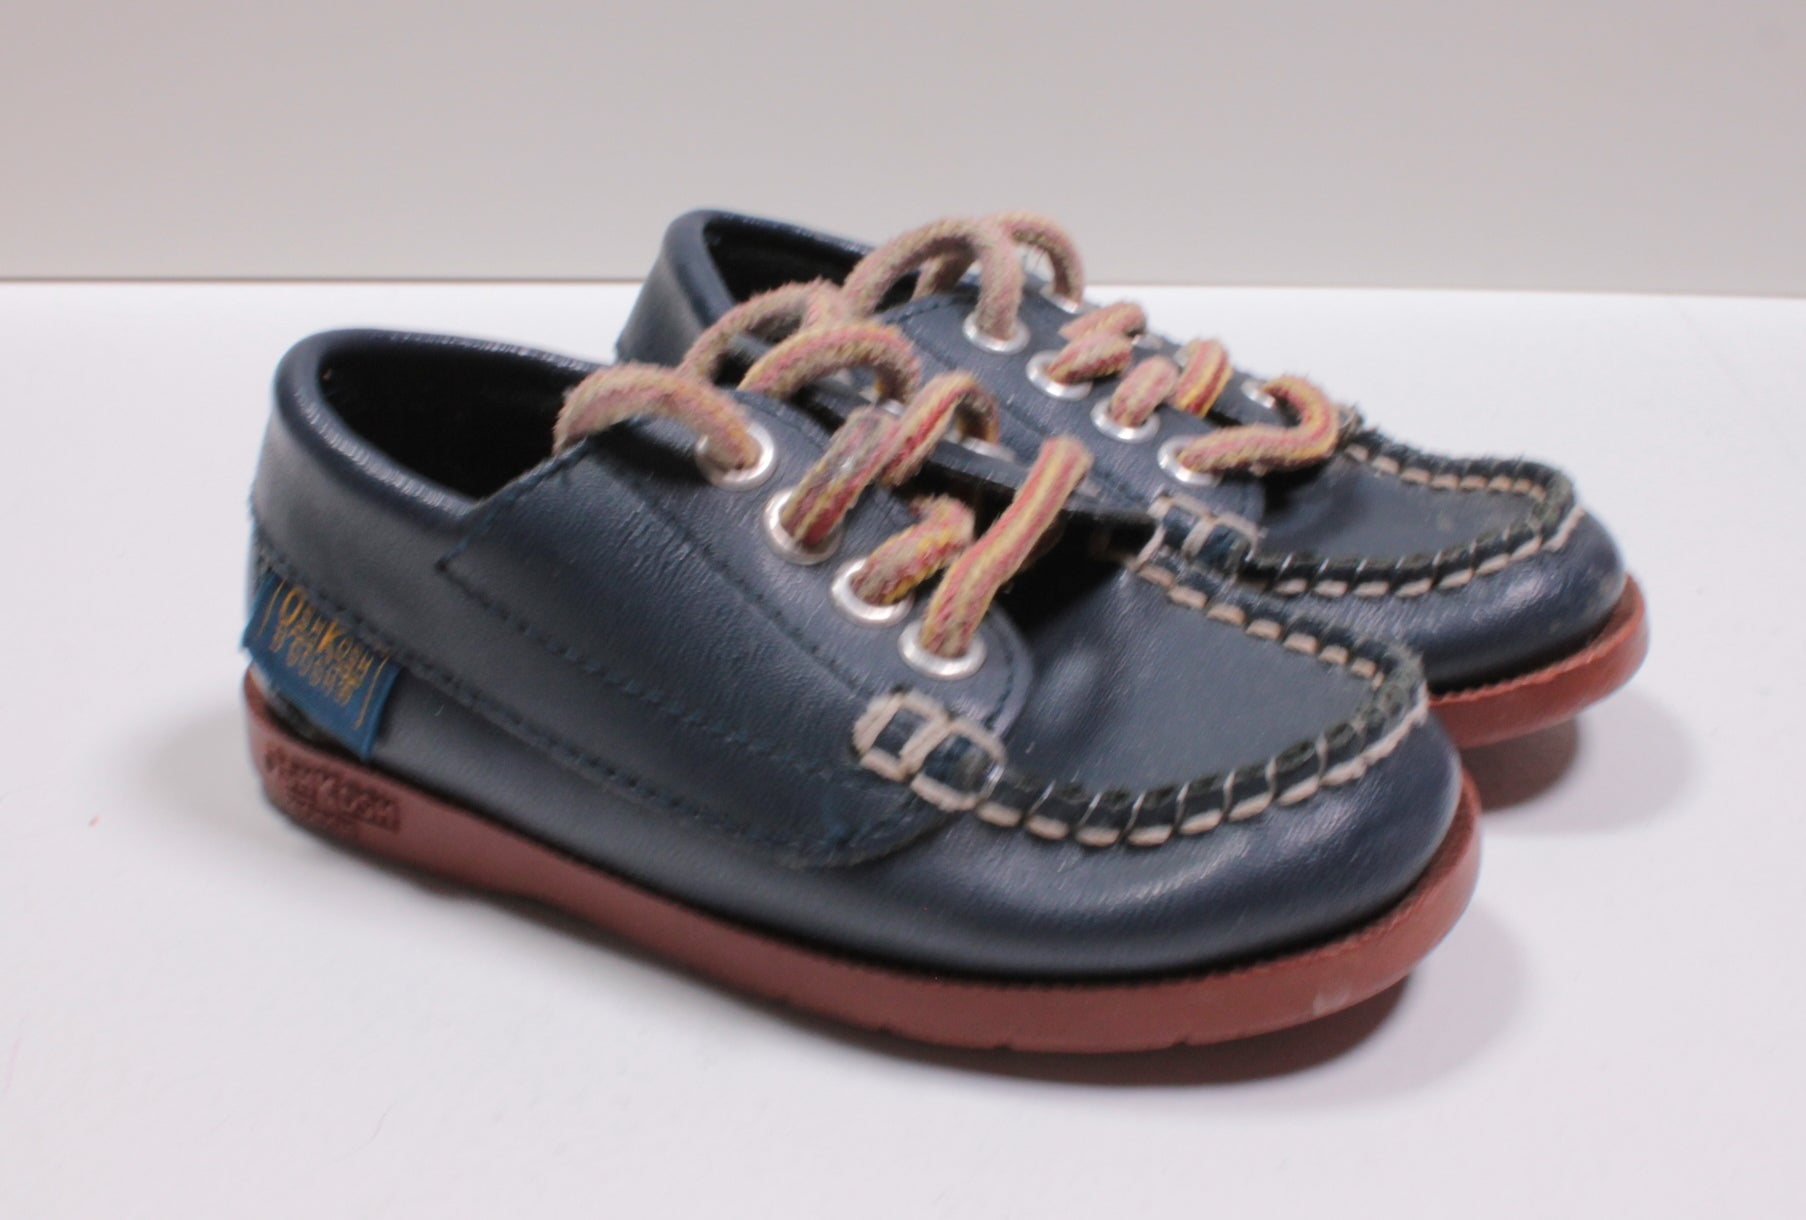 OSH KOSH NAVY DOCK SHOE SIZE 5 (SMALL FIT)  VGUC/EUC